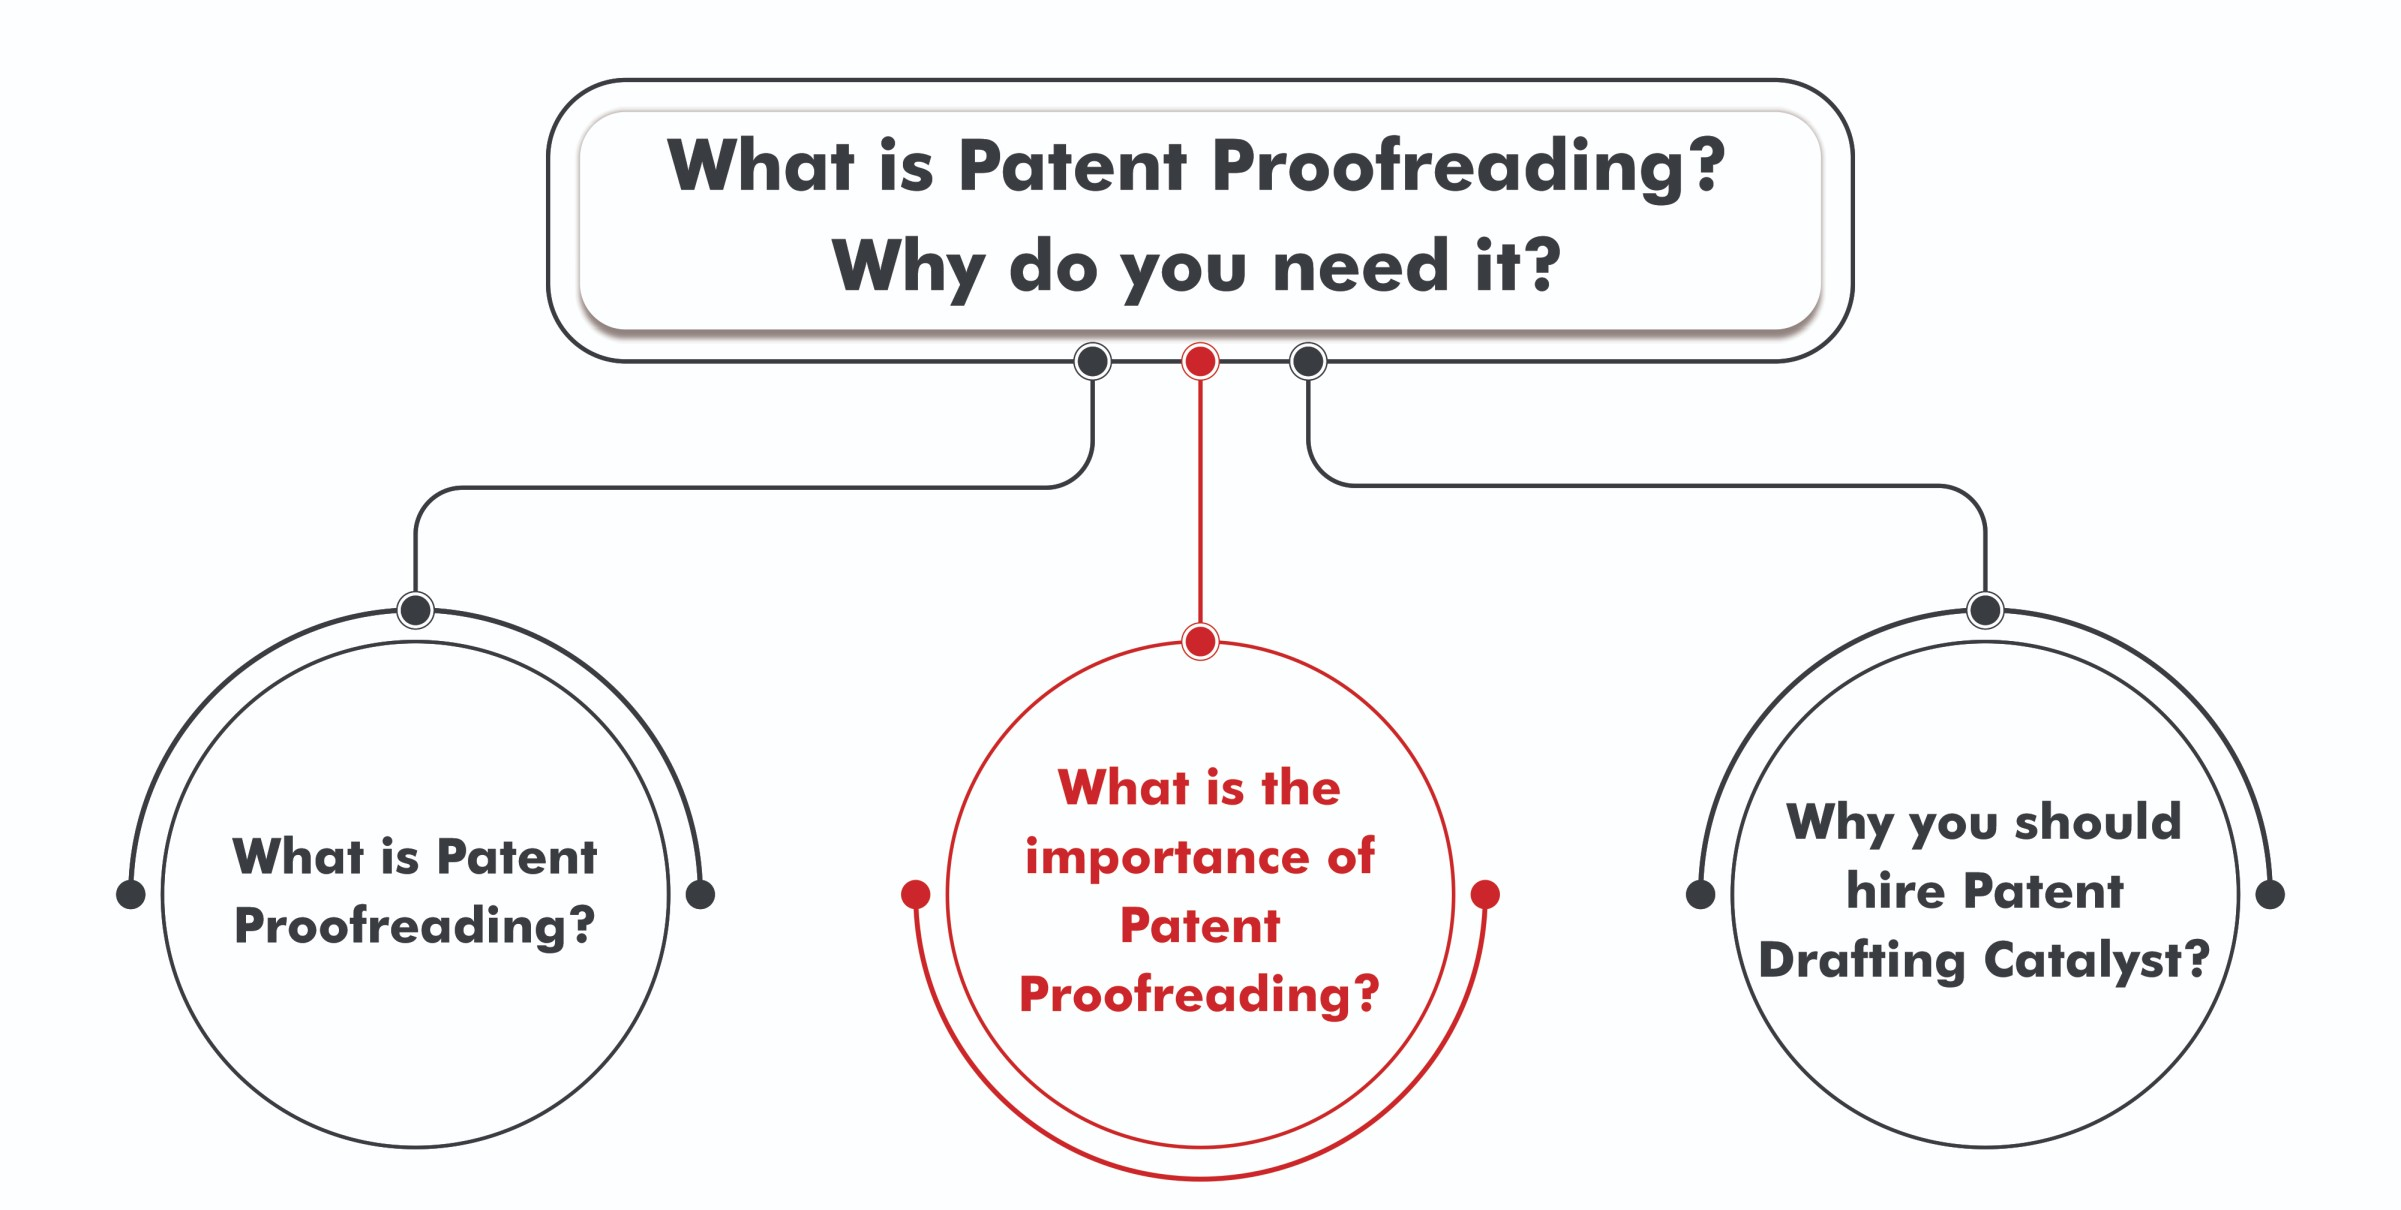 Patent Proofreading